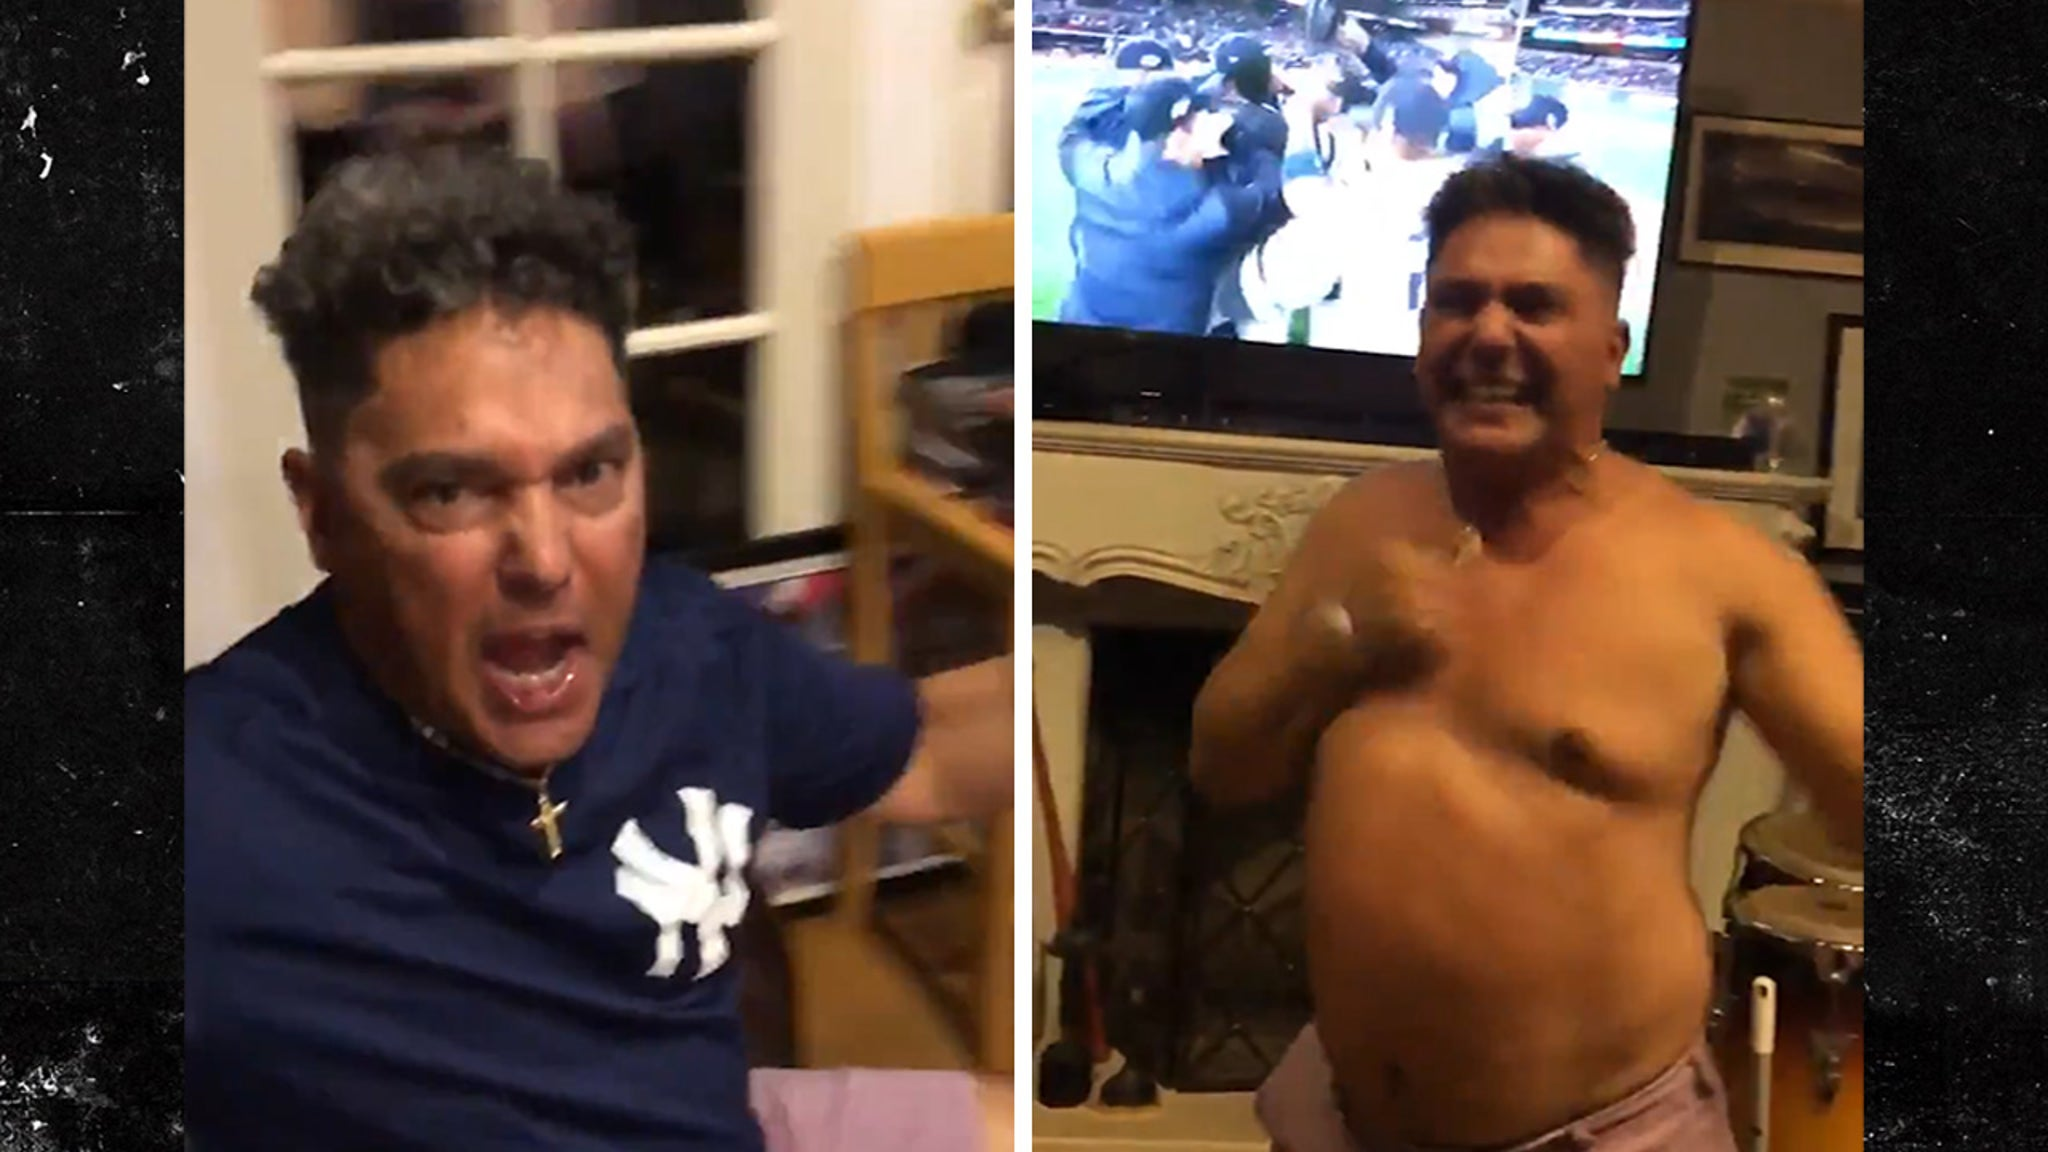 Nick Turturro Tears Off Shirt and Breaks Out the Broom After Yankees Sweep!